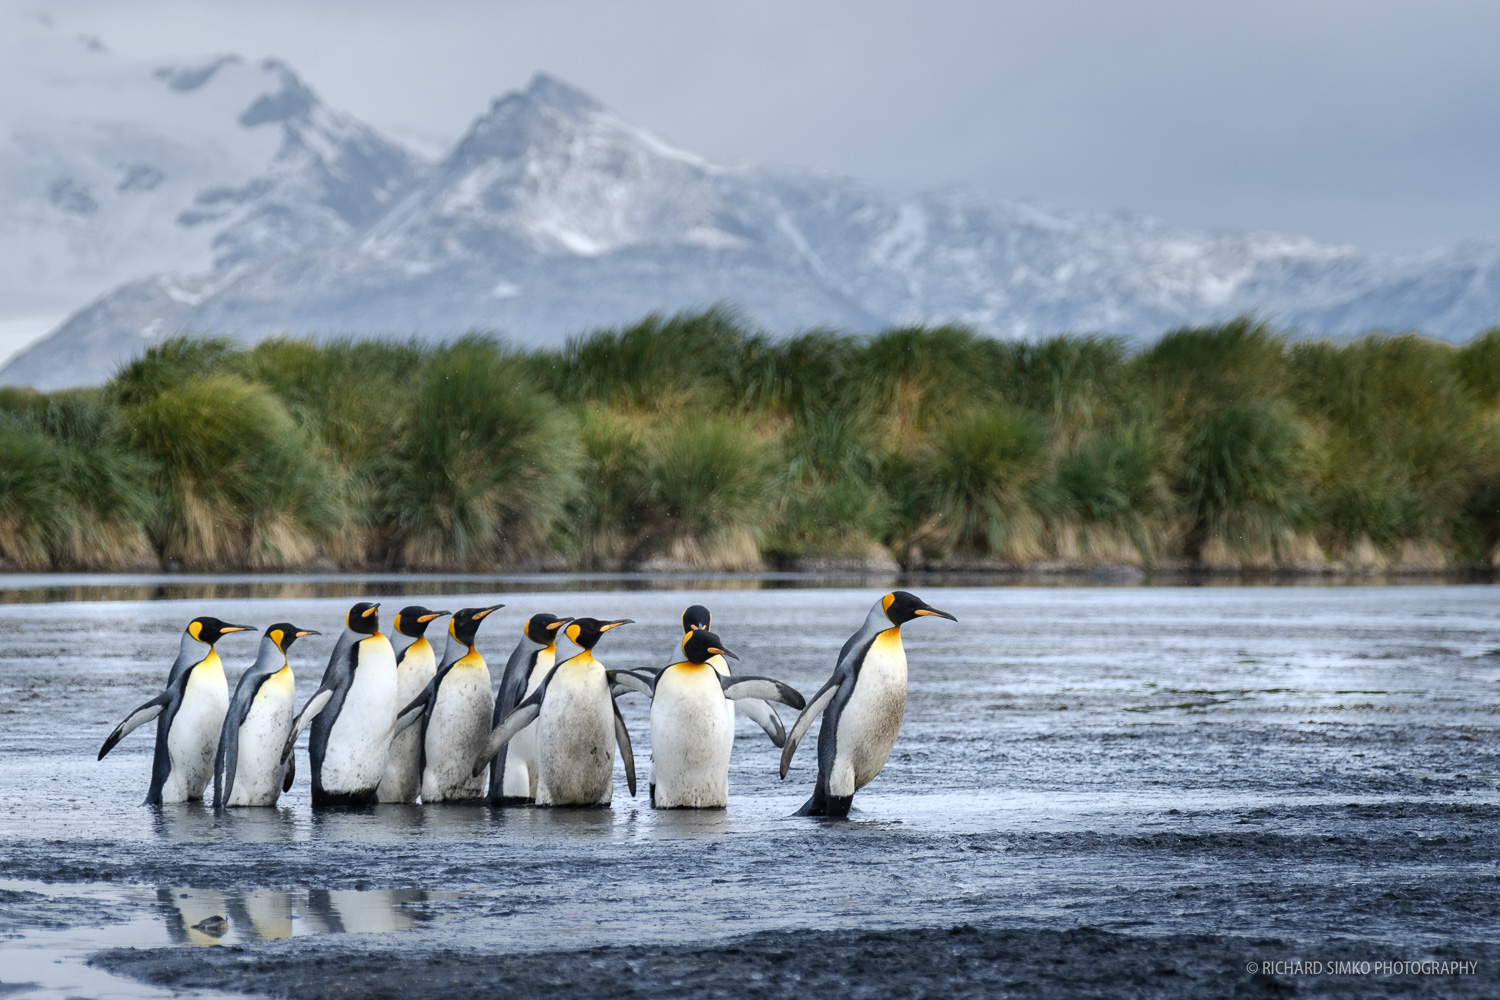 On the way to work. When visiting any wildlife colony, it is very important that we leave a free access to the see for animals. These penguins are making their way to the sea through such a free space we left for them.